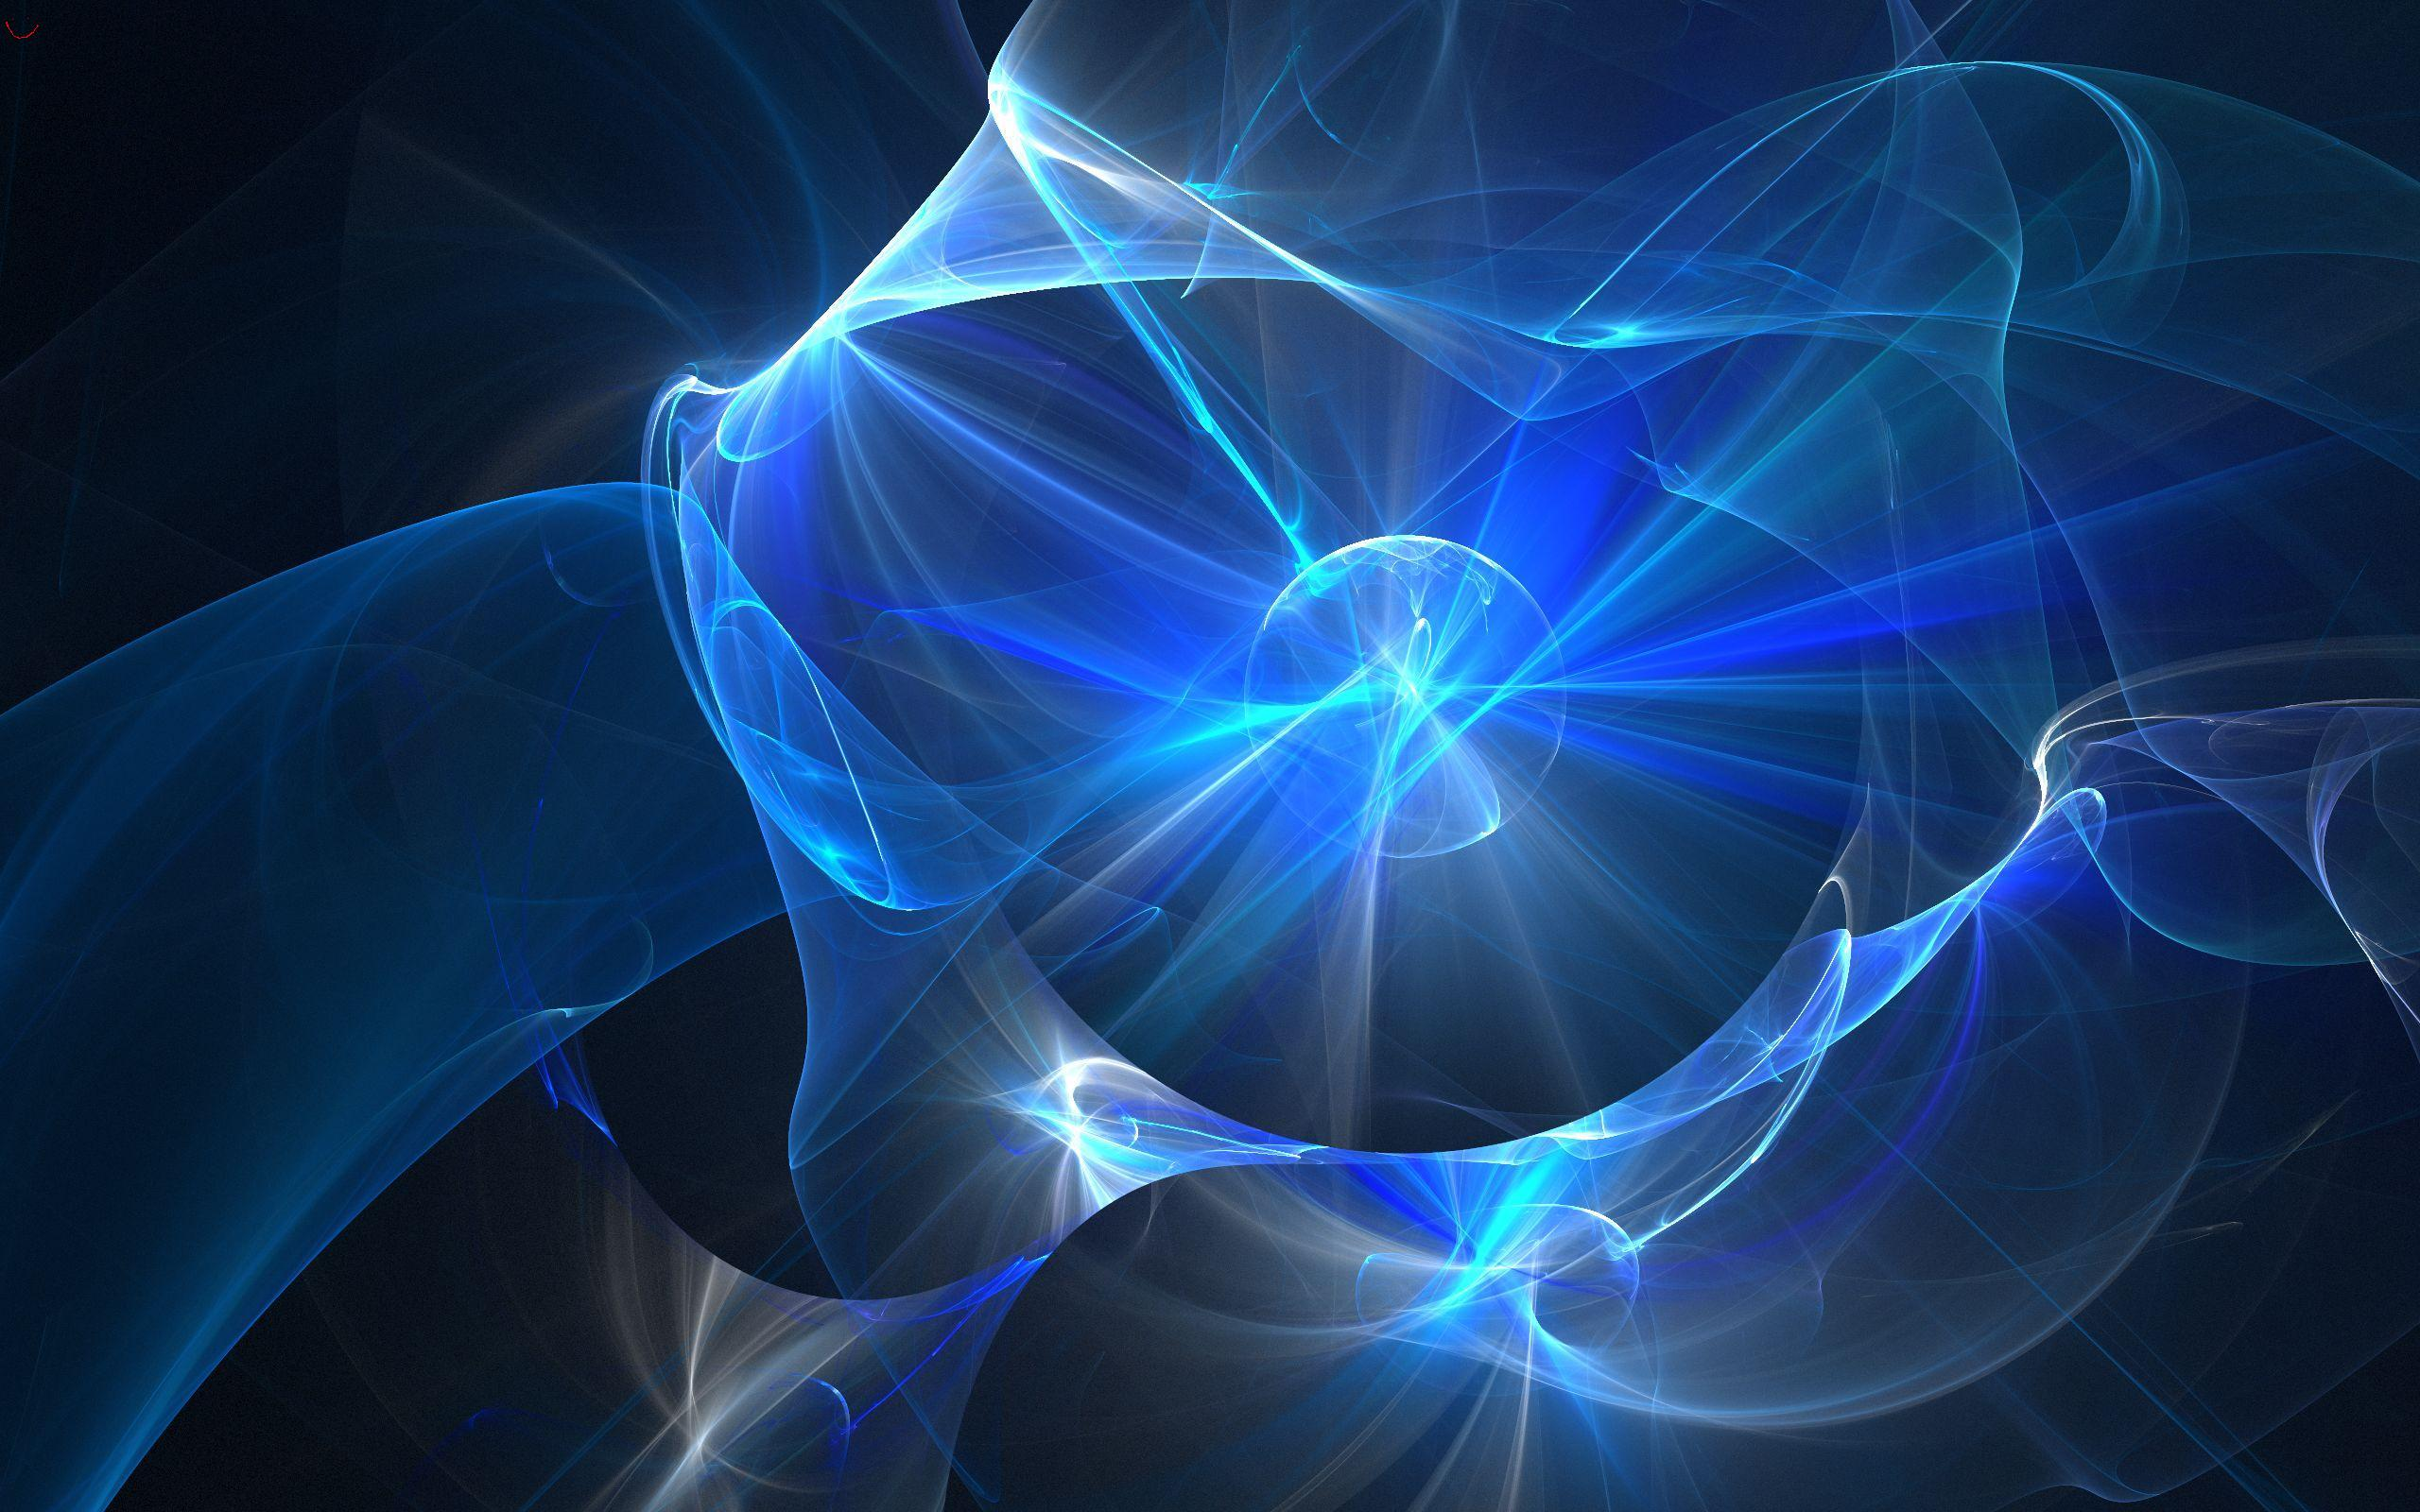 Wallpaper Abstract Blue